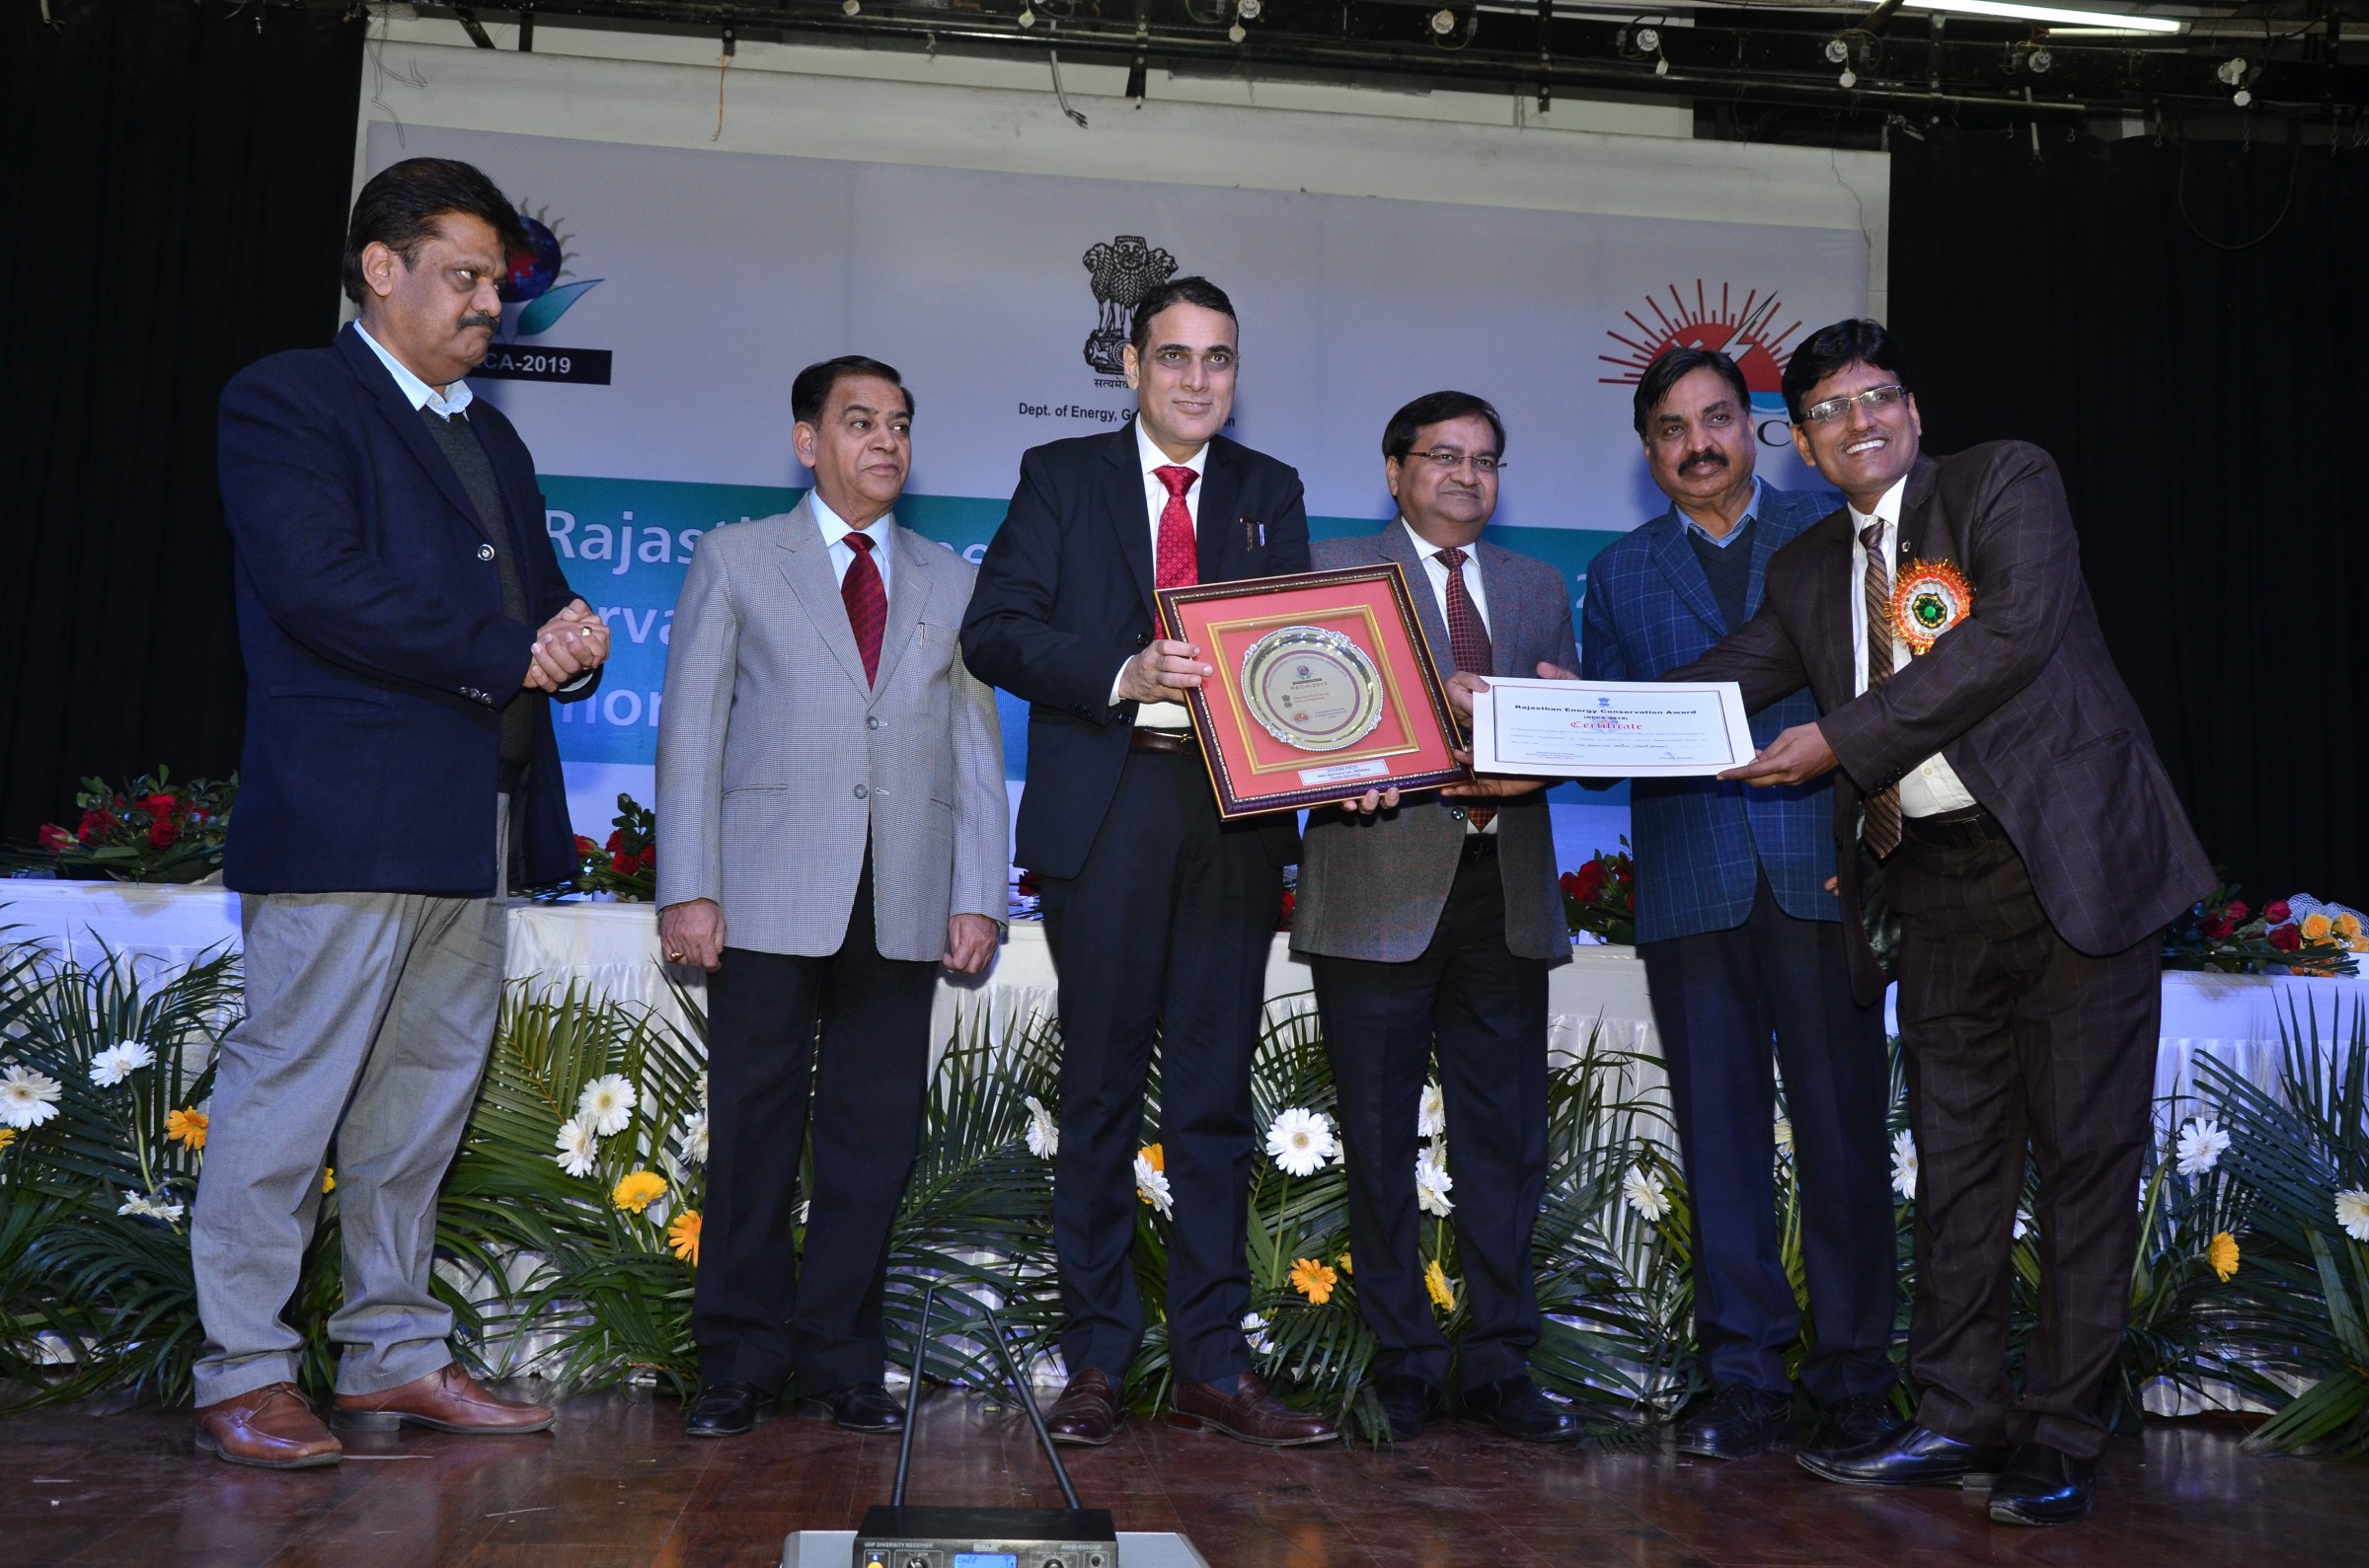 Rajasthan Energy Conservation Award 2019- Second Prize in Textiles Spinning Category